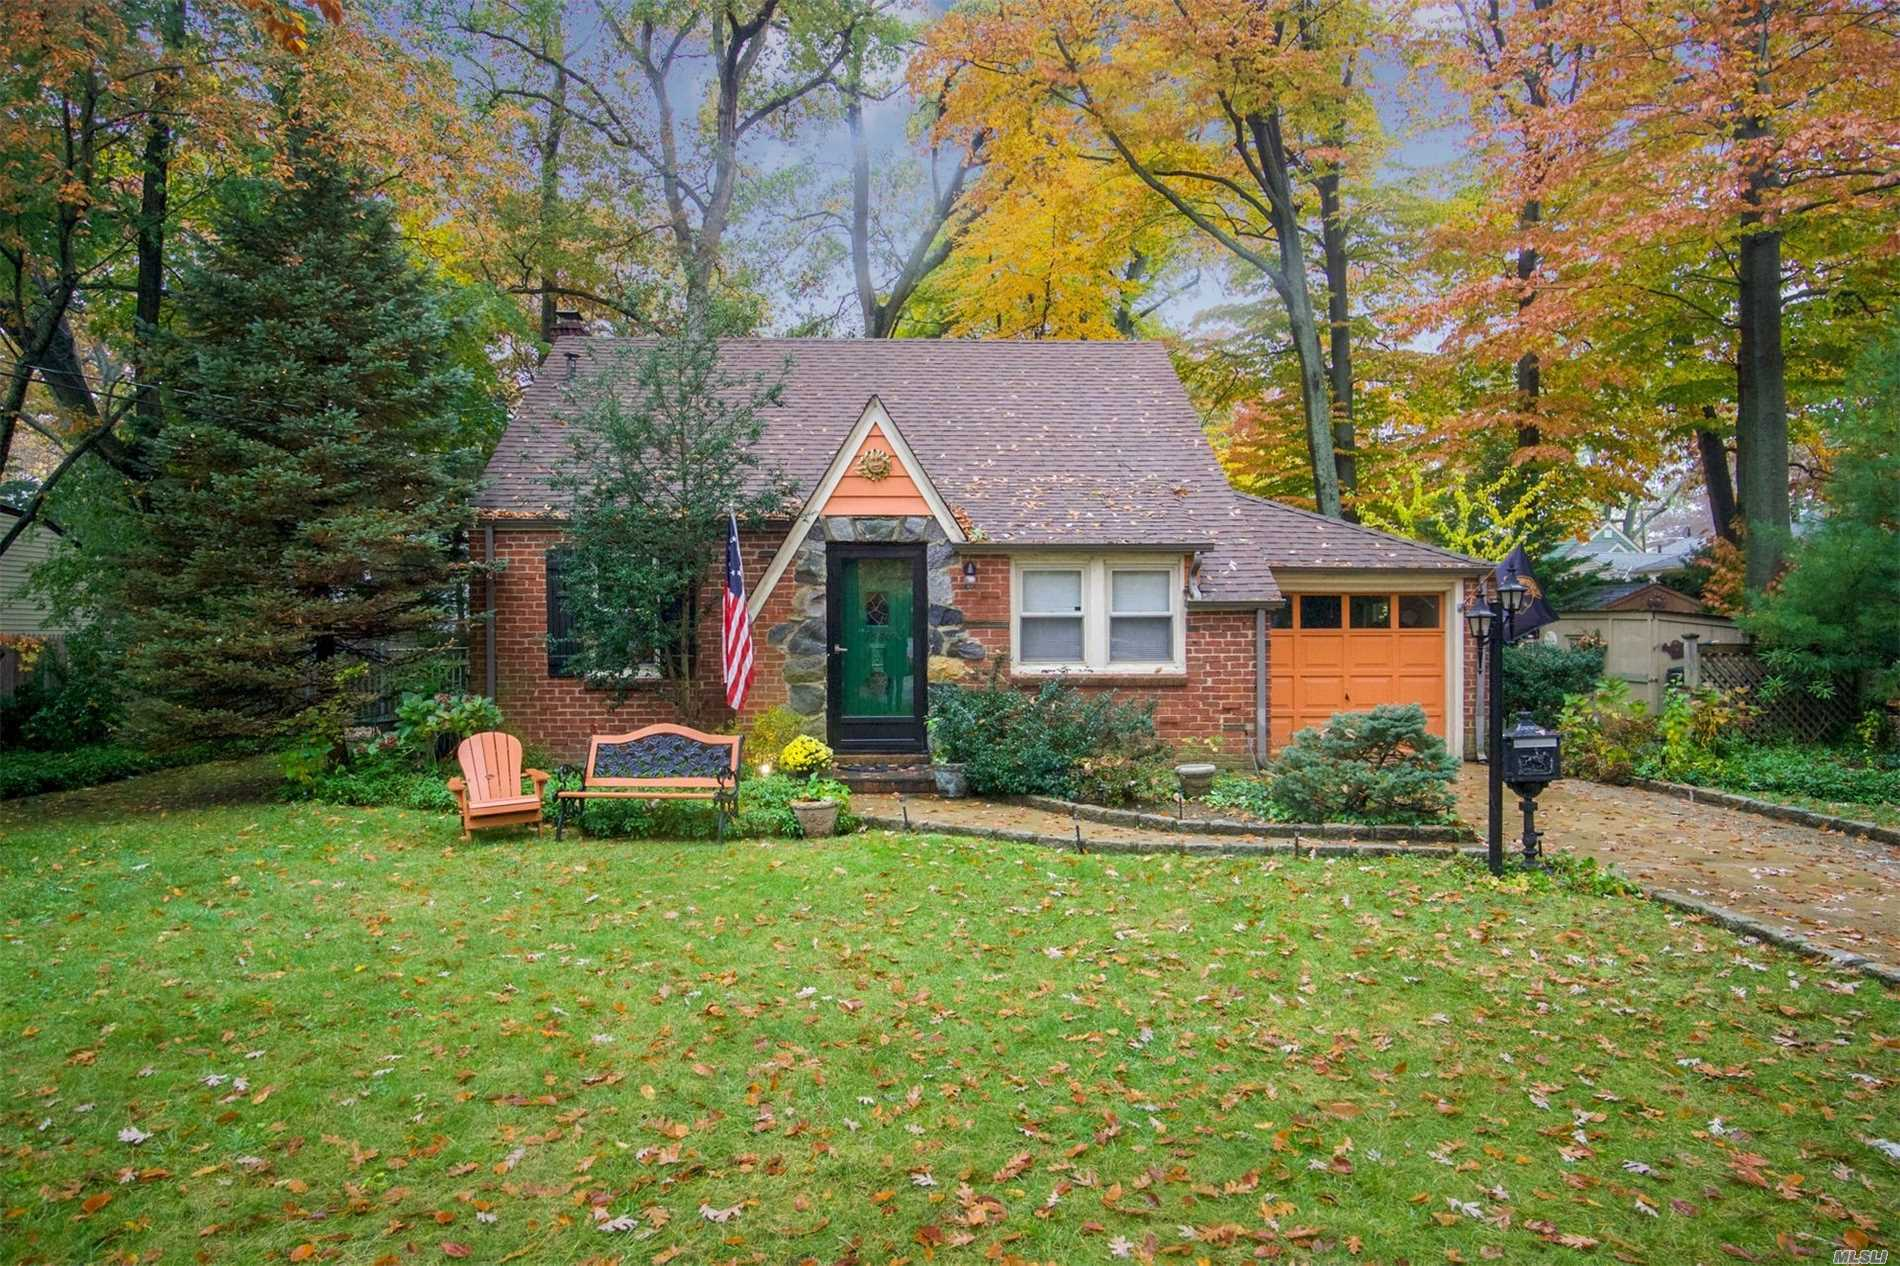 Charming Brick Cape In Desirable Wantagh Woods Nestled On Parklike 80X125 Property With Many Trees. This House Is The Perfect Home Or Customize To Your Dream Home, Located Mid-Block On One Of The Nicest Blocks. Must See To Appreciate!